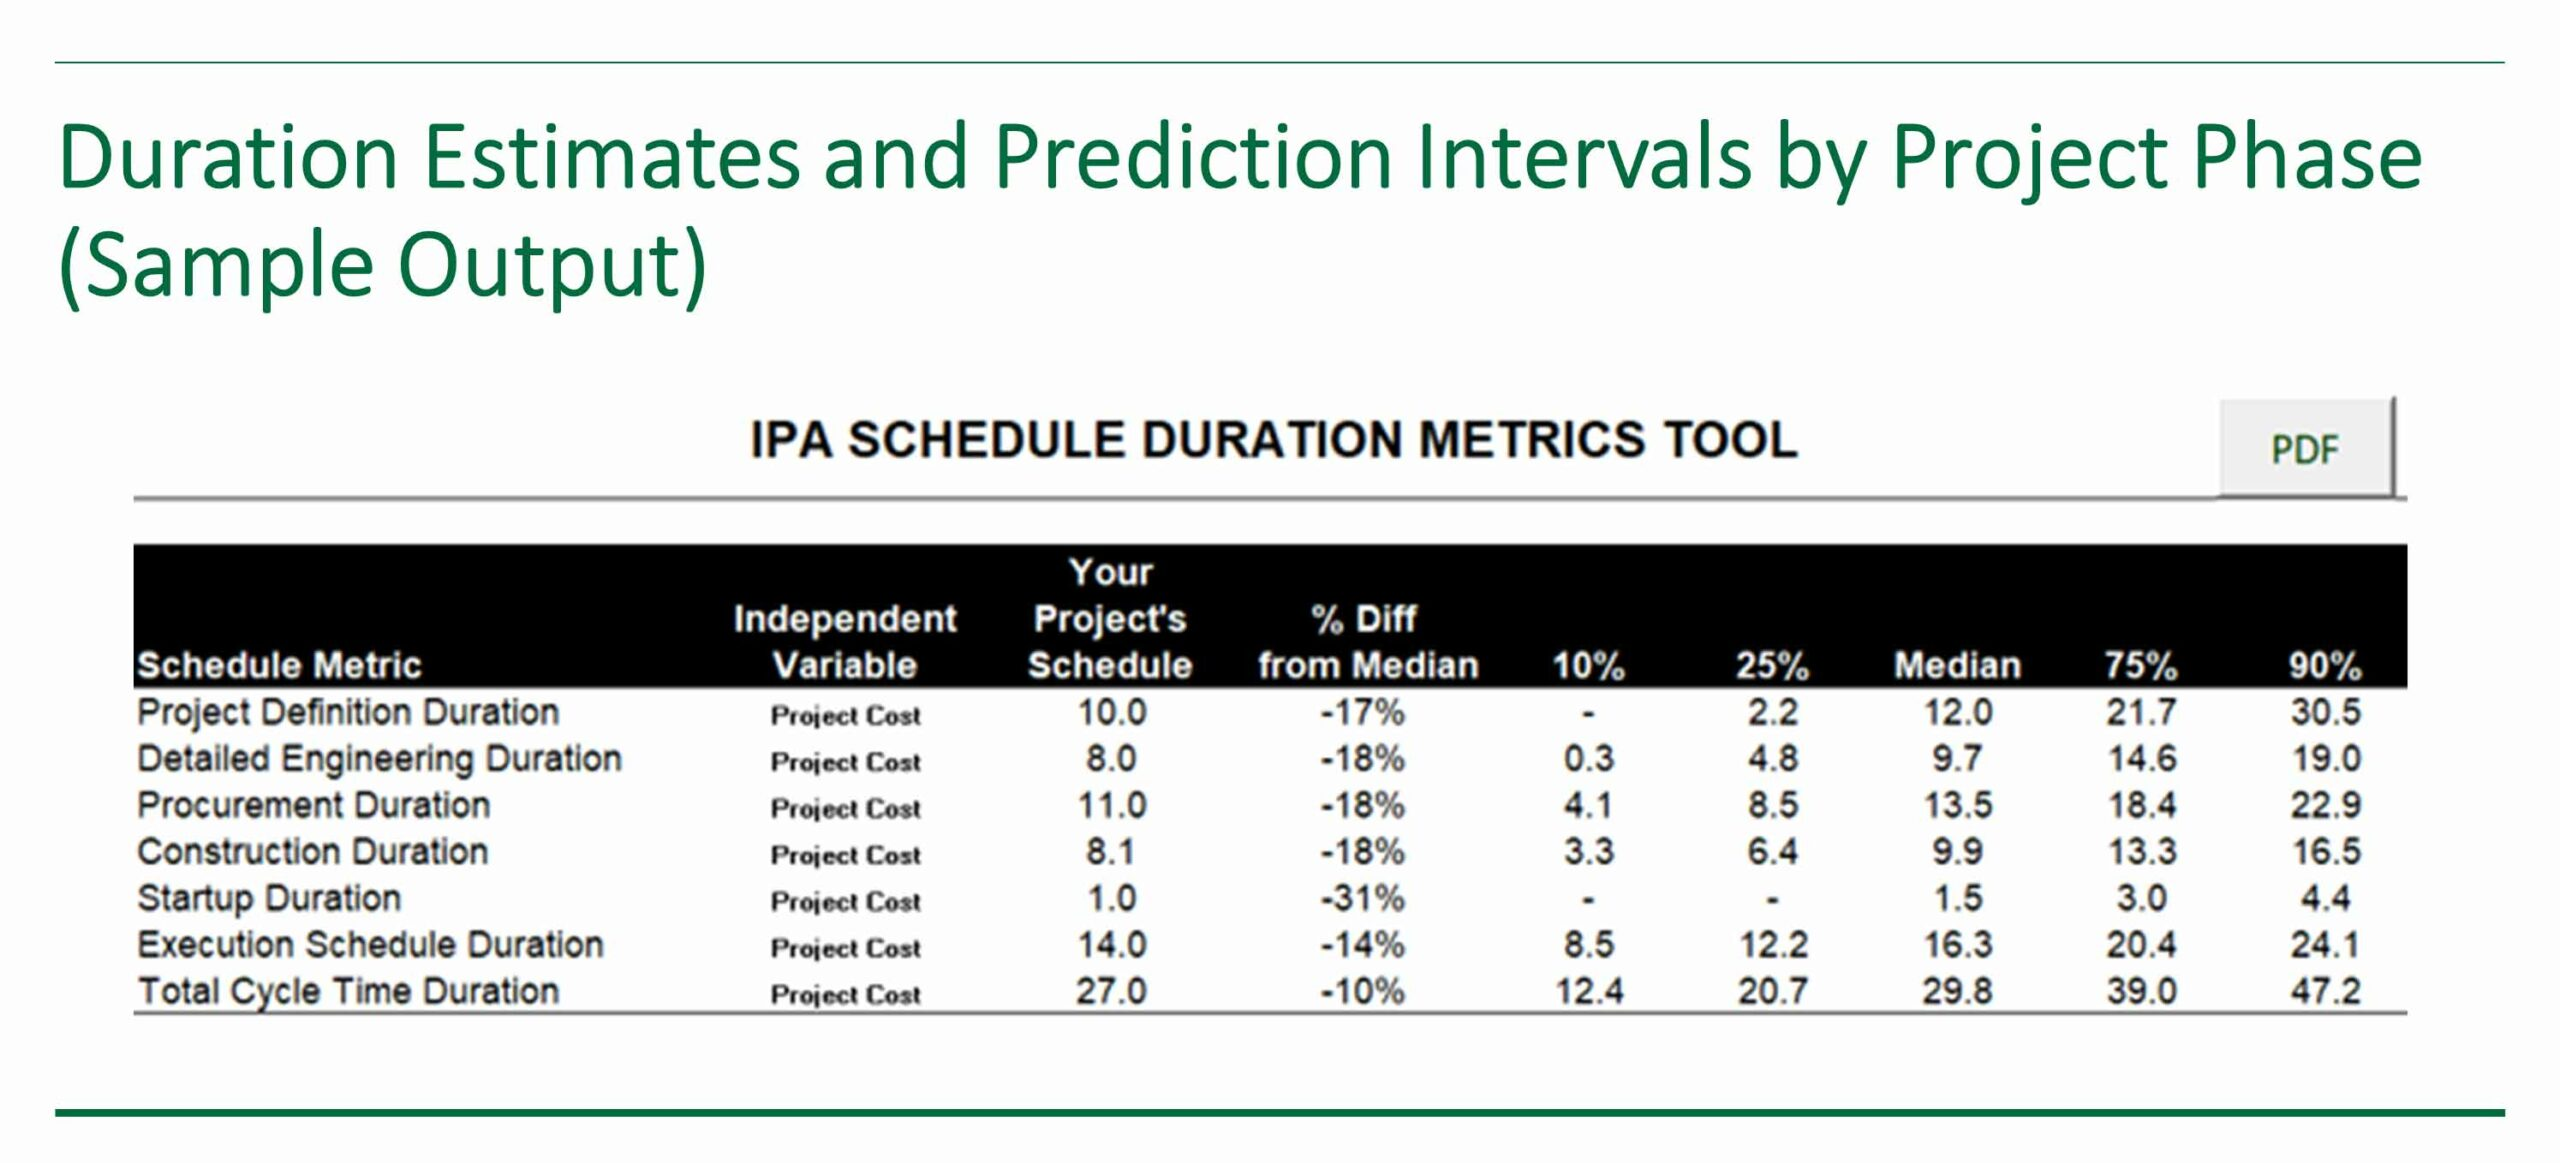 Sample output from IPA's Conceptual Schedule Duration Tool showing duration estimates and prediction intervals by project phase.